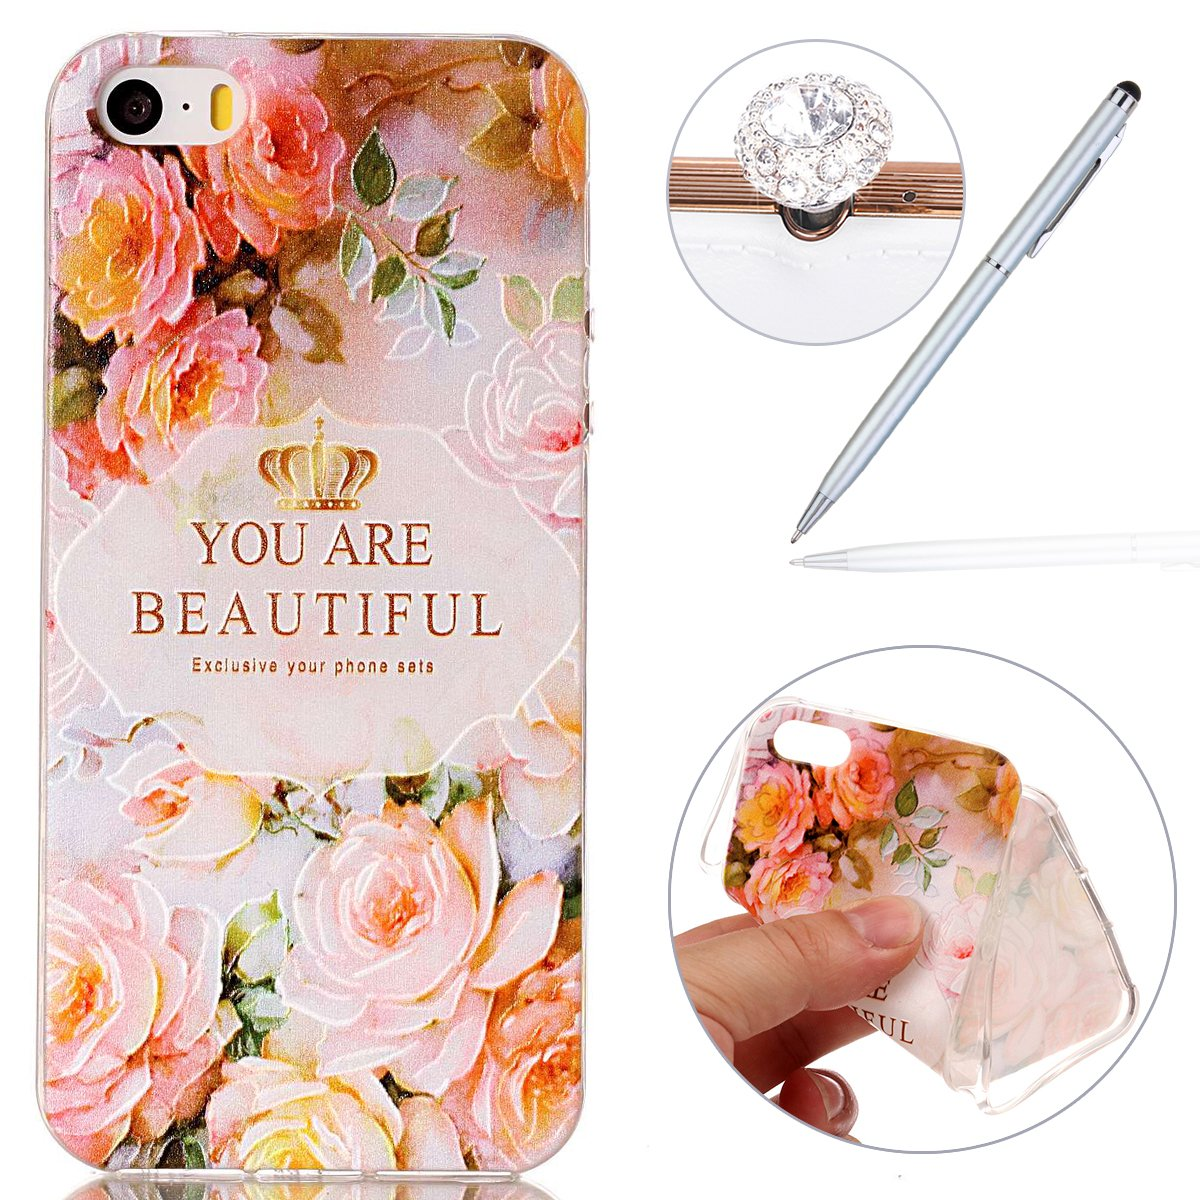 iphone 5 Case,iphone 5S Cover,Soft Cover for iphone SE, Felfy Colorful Panting Design Transparent Gel TPU Flexible Durable Shock Absorbing Scratch Resistant Protective Cover Skin Shell for Apple iphone 5/5S/SE + 1 Silver Stylus Pen + 1 Dust Plug.Cute Cat F